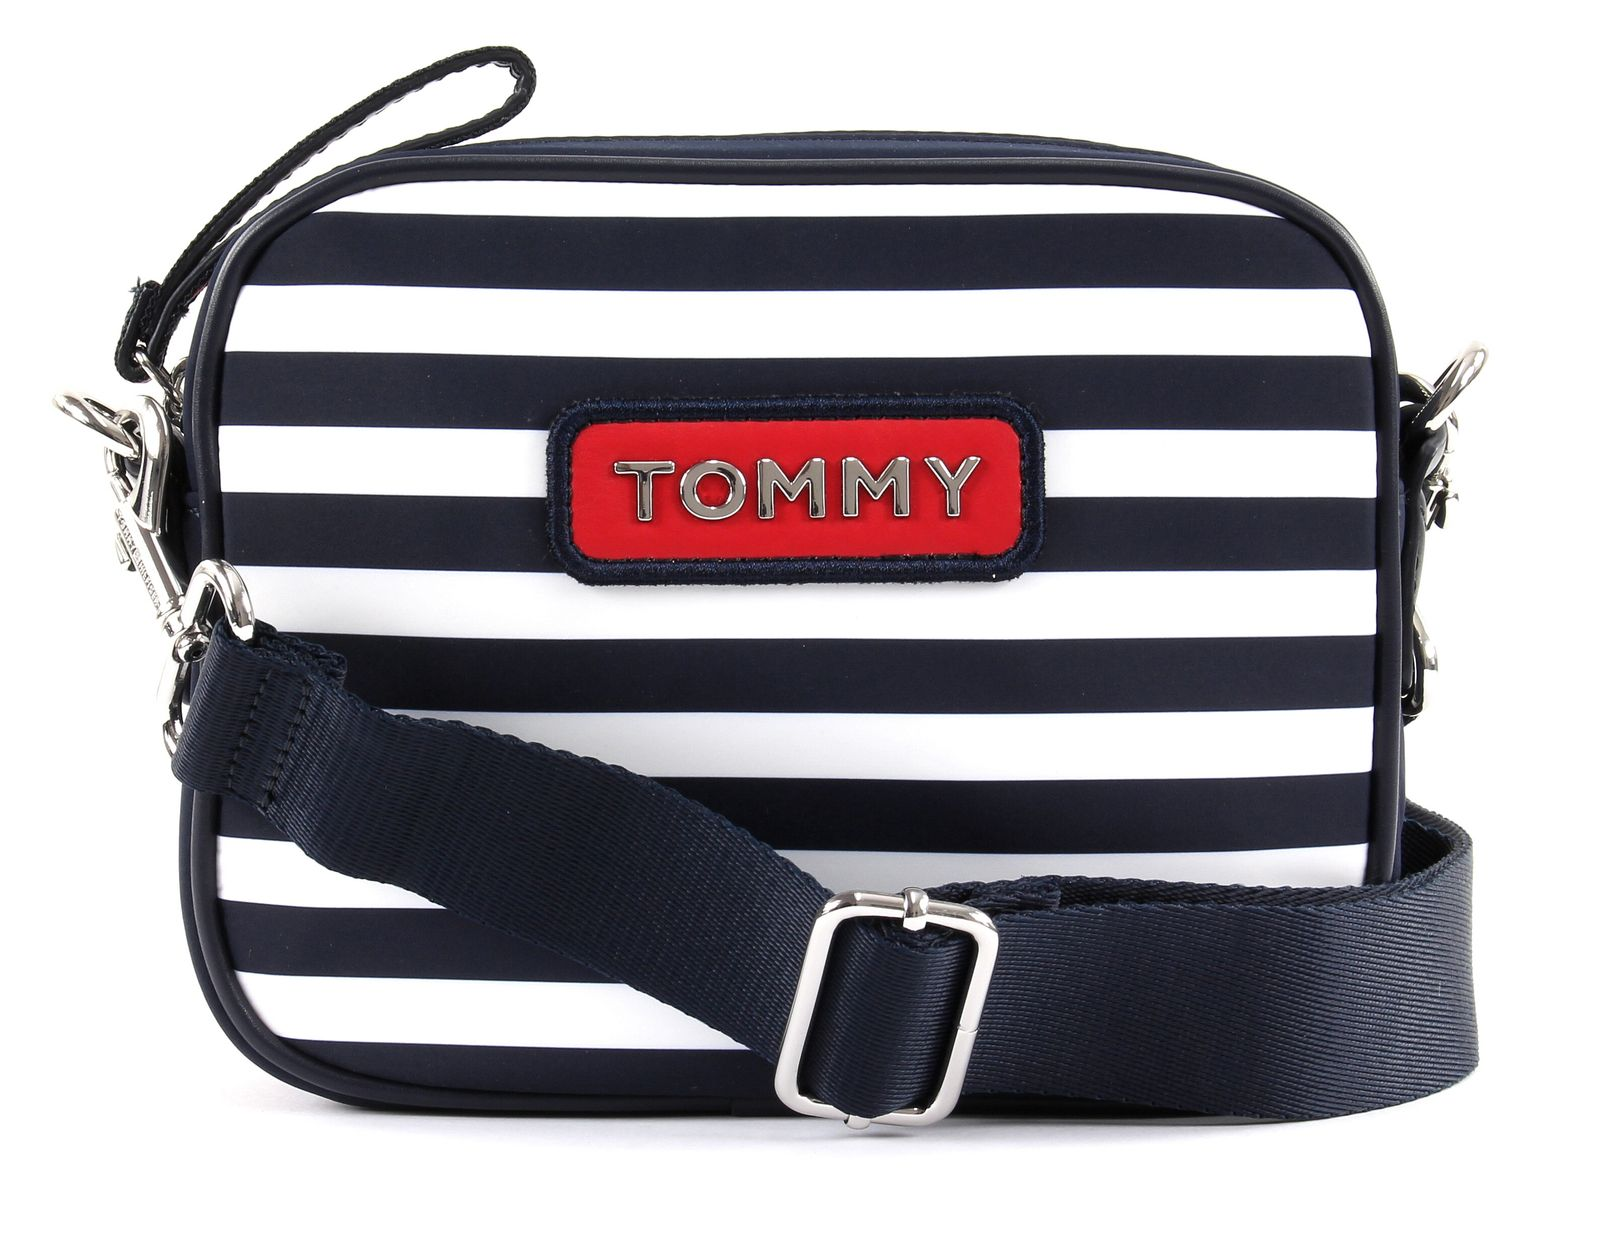 170aaf49 ... To CloseTOMMY HILFIGER Varsity Nylon Crossover Stripe / 55,00 €*Tap To  CloseOnly possible if you pay by Paypal, Amazon Payments, Credit Card, ...